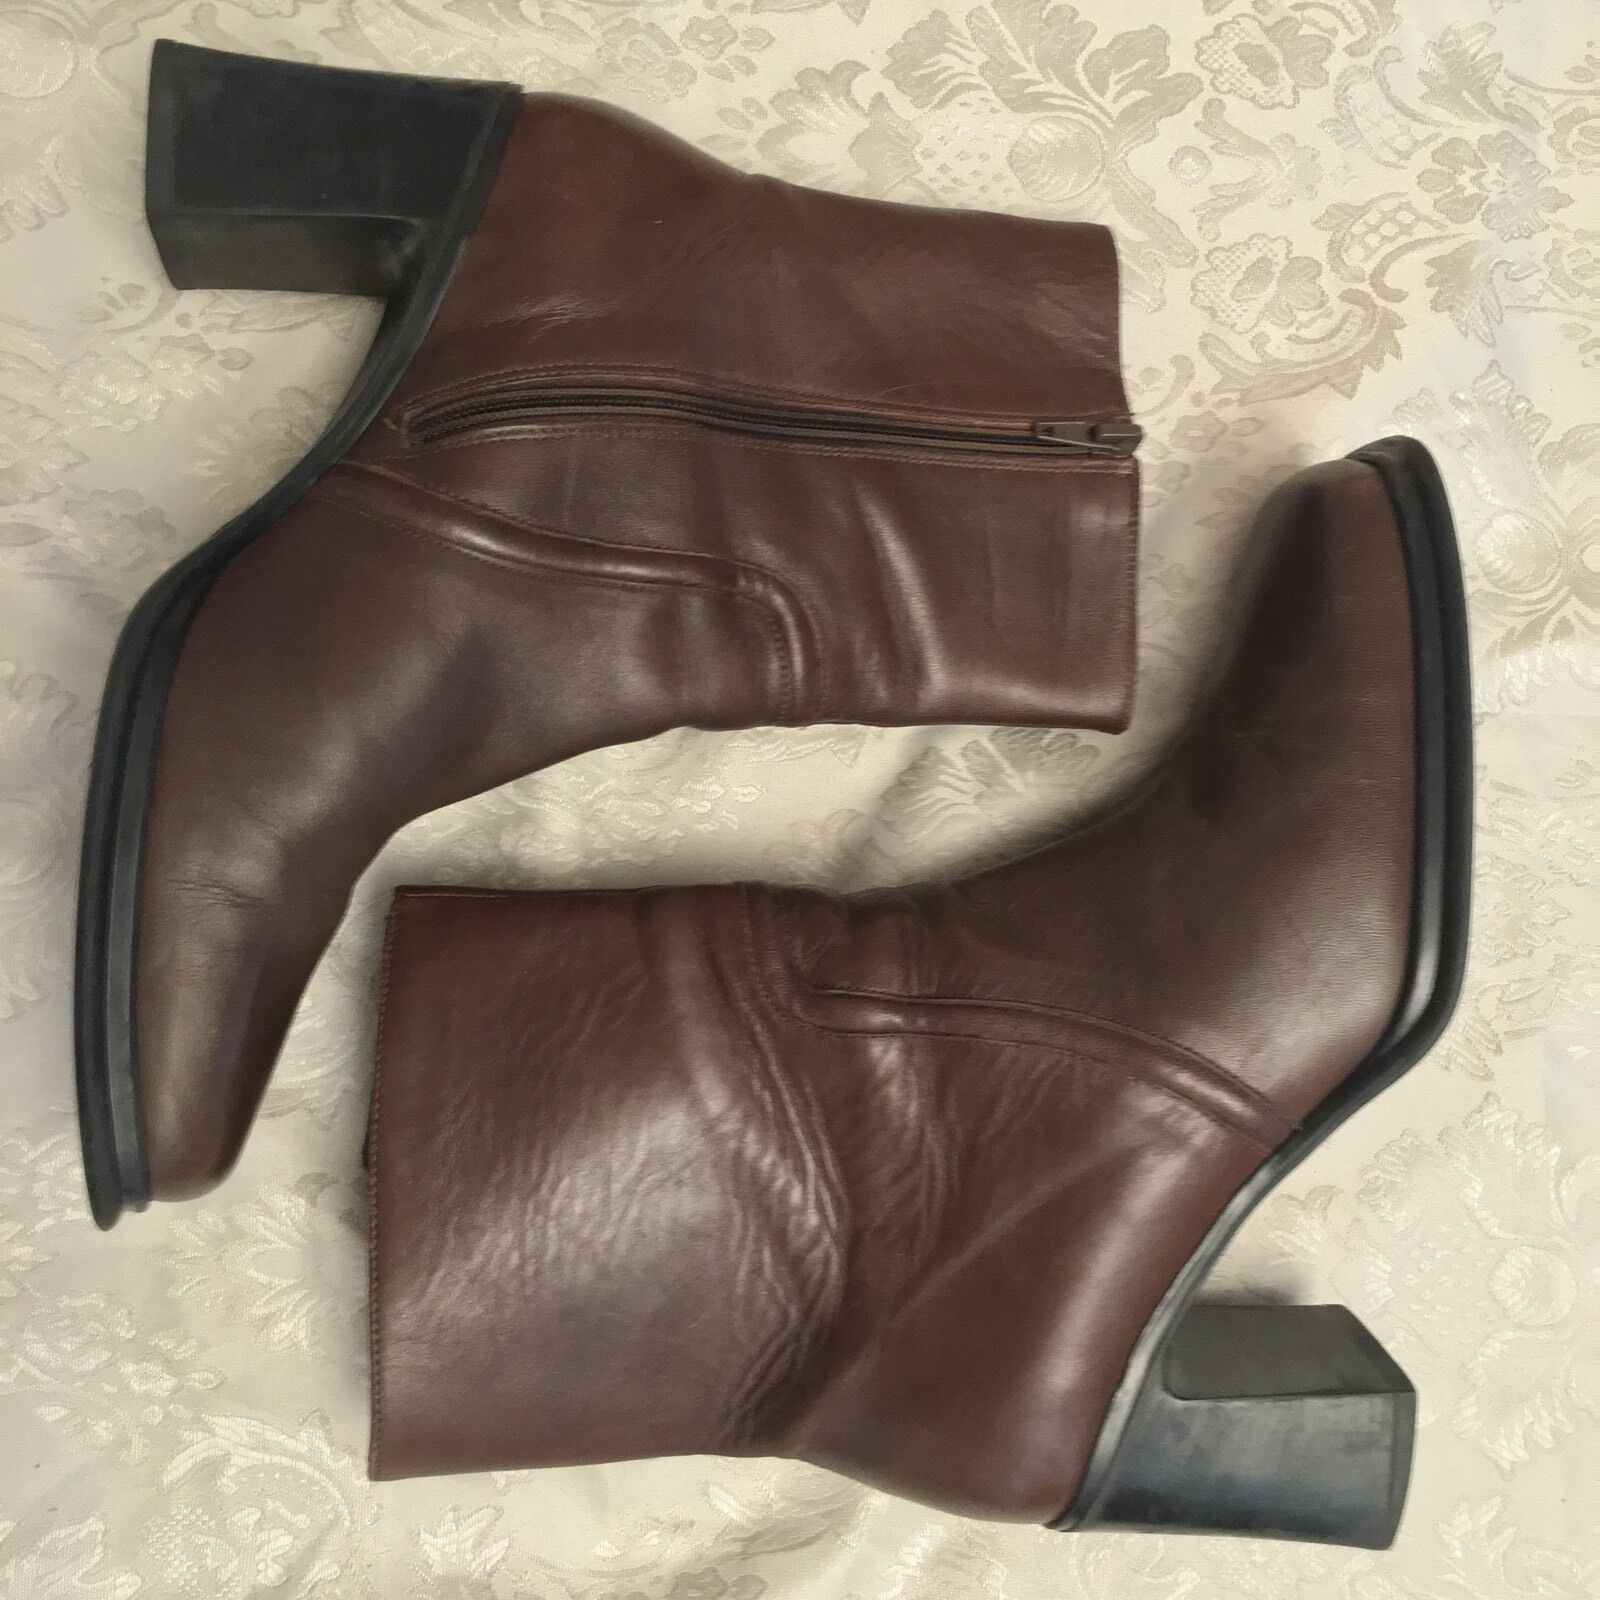 ANDREA COLLECTION Women's Boots Brown size 9.5 Zip Made in Italy